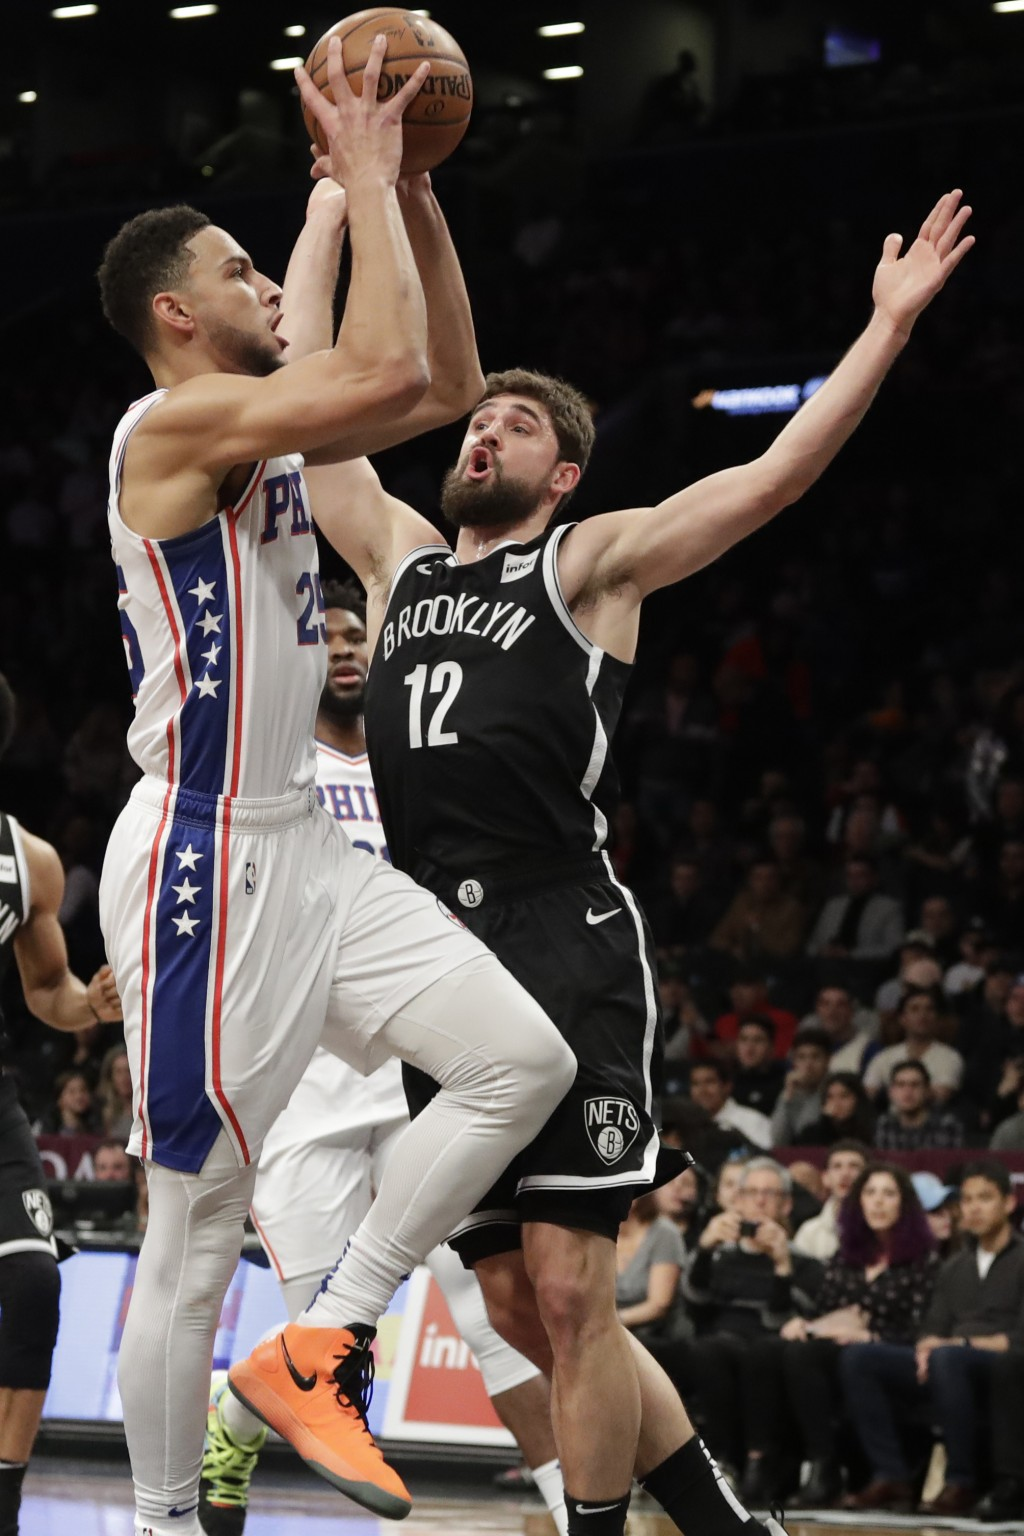 Philadelphia 76ers Ben Simmons (25) drives to the basket against Brooklyn Nets Joe Harris (12) in the first quarter of a basketball game, Sunday, Nov.